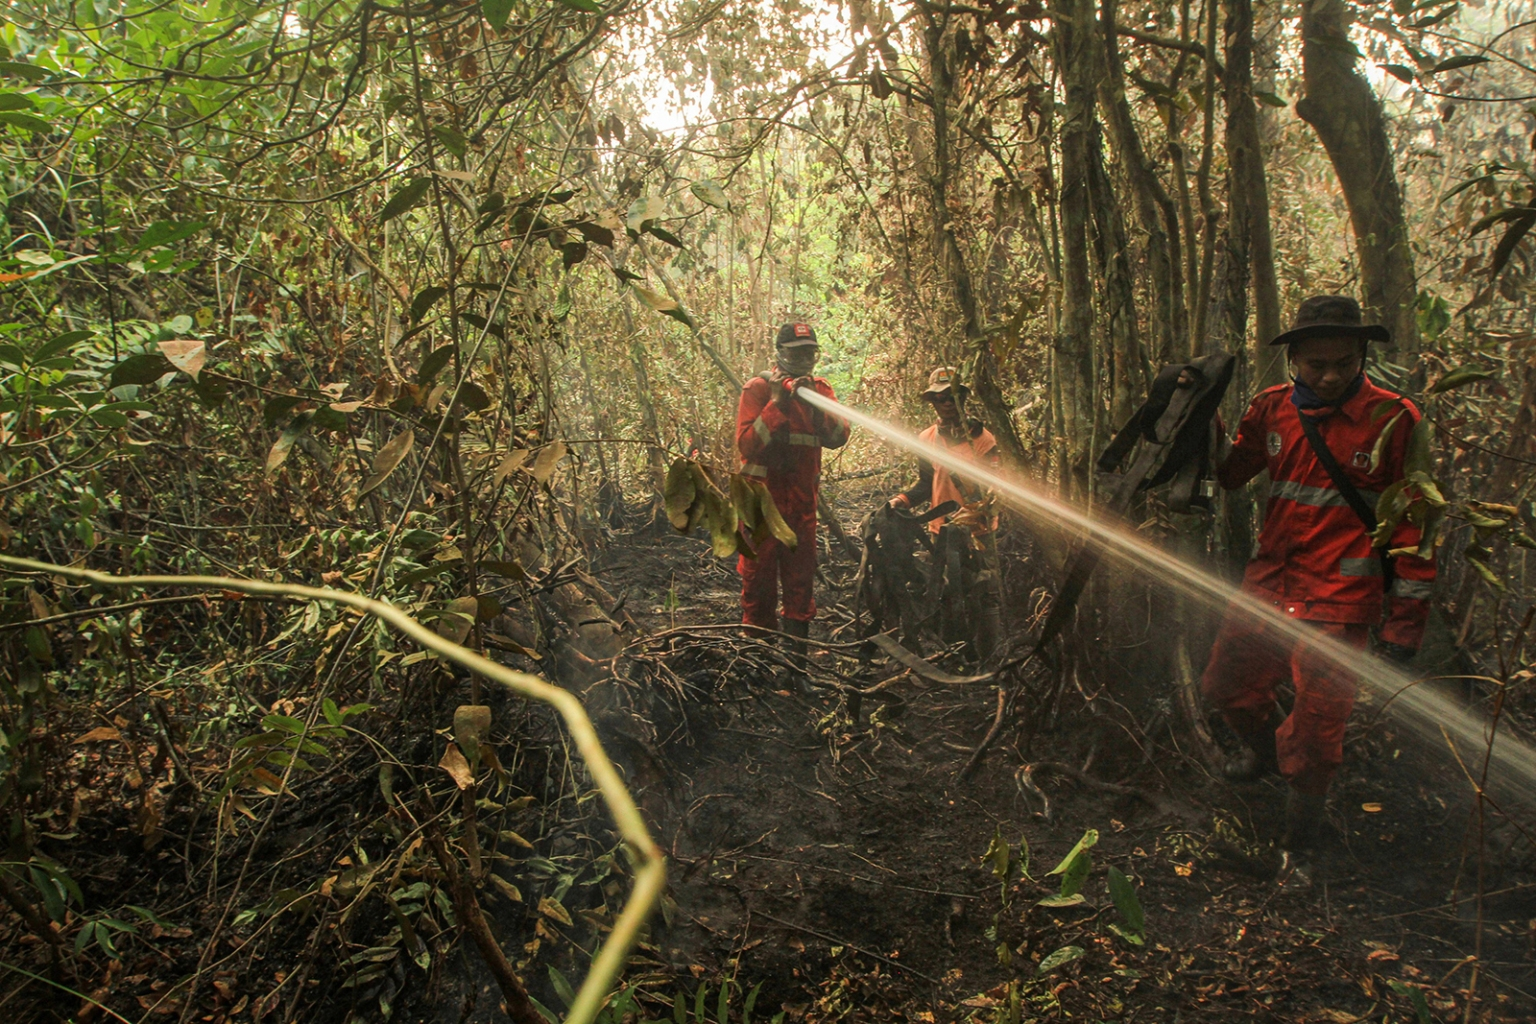 Indonesian firefighters battle a peatland forest fire in Ogan Ilir, South Sumatra, on Sept. 23. The blazes have been spewing toxic haze across Southeast Asia, forcing the closure of schools and airports, and prompting Jakarta to deploy thousands of personnel to tackle them. ABDUL QODIR/AFP/Getty Images